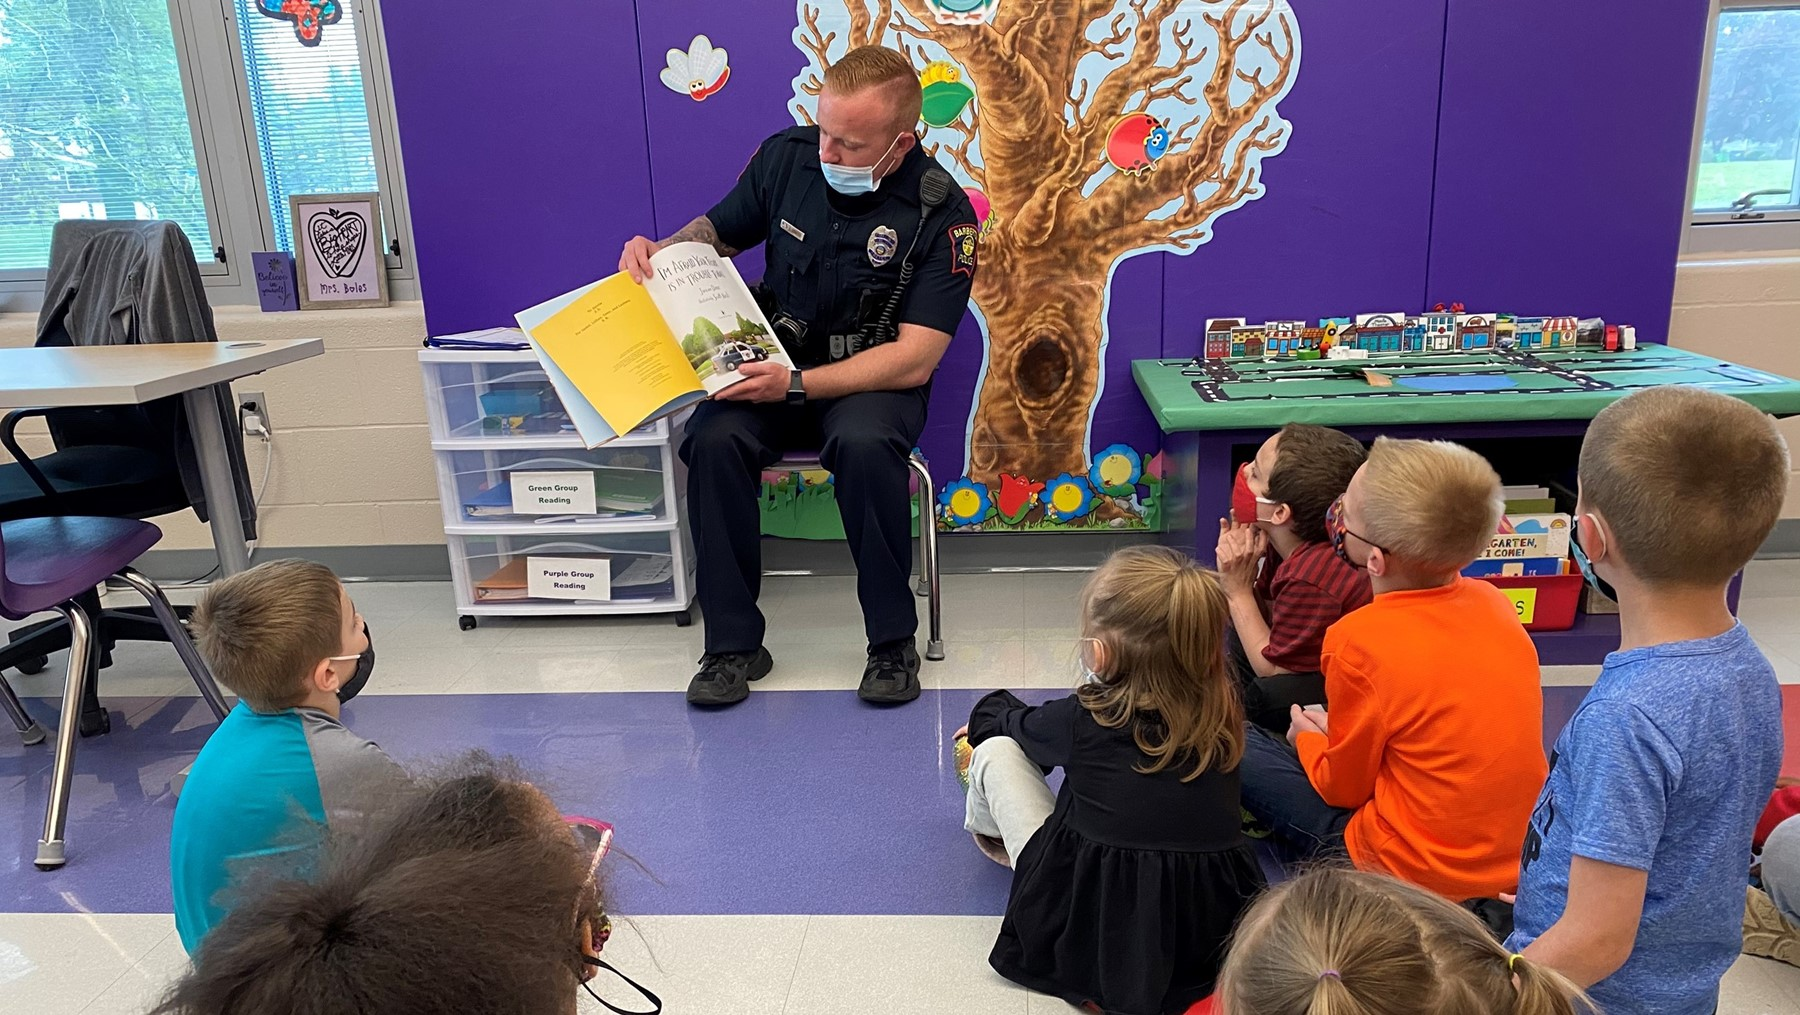 SRO Stalder reads a story to Mrs. Monroe's class @BEW during a lesson on community helpers.